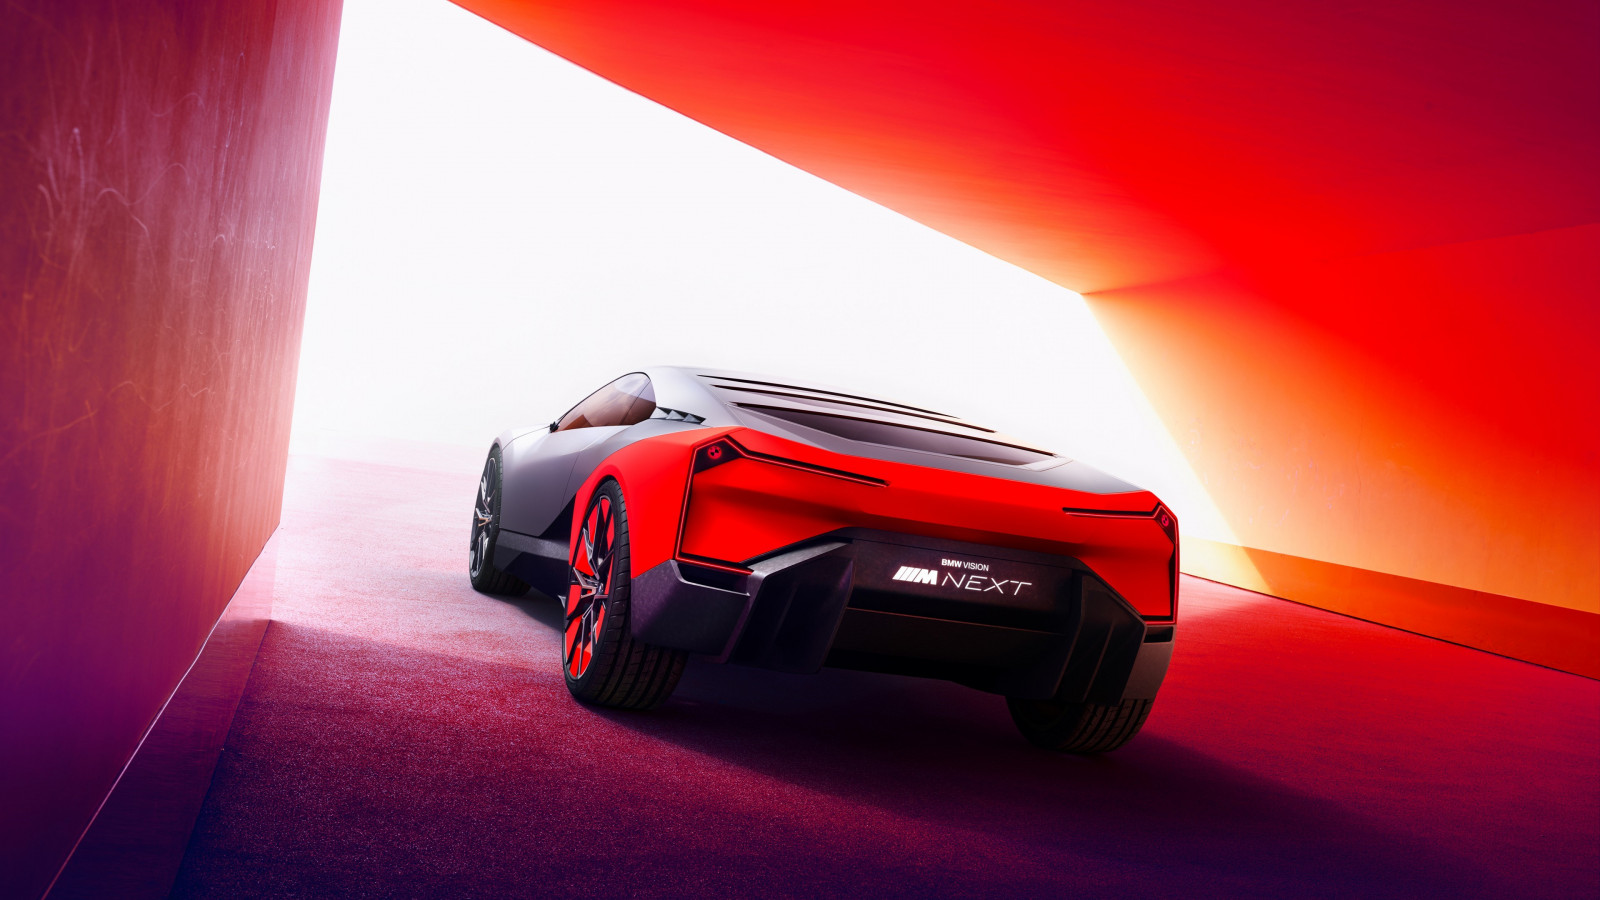 BMW Vision M NEXT wallpaper 1600x900